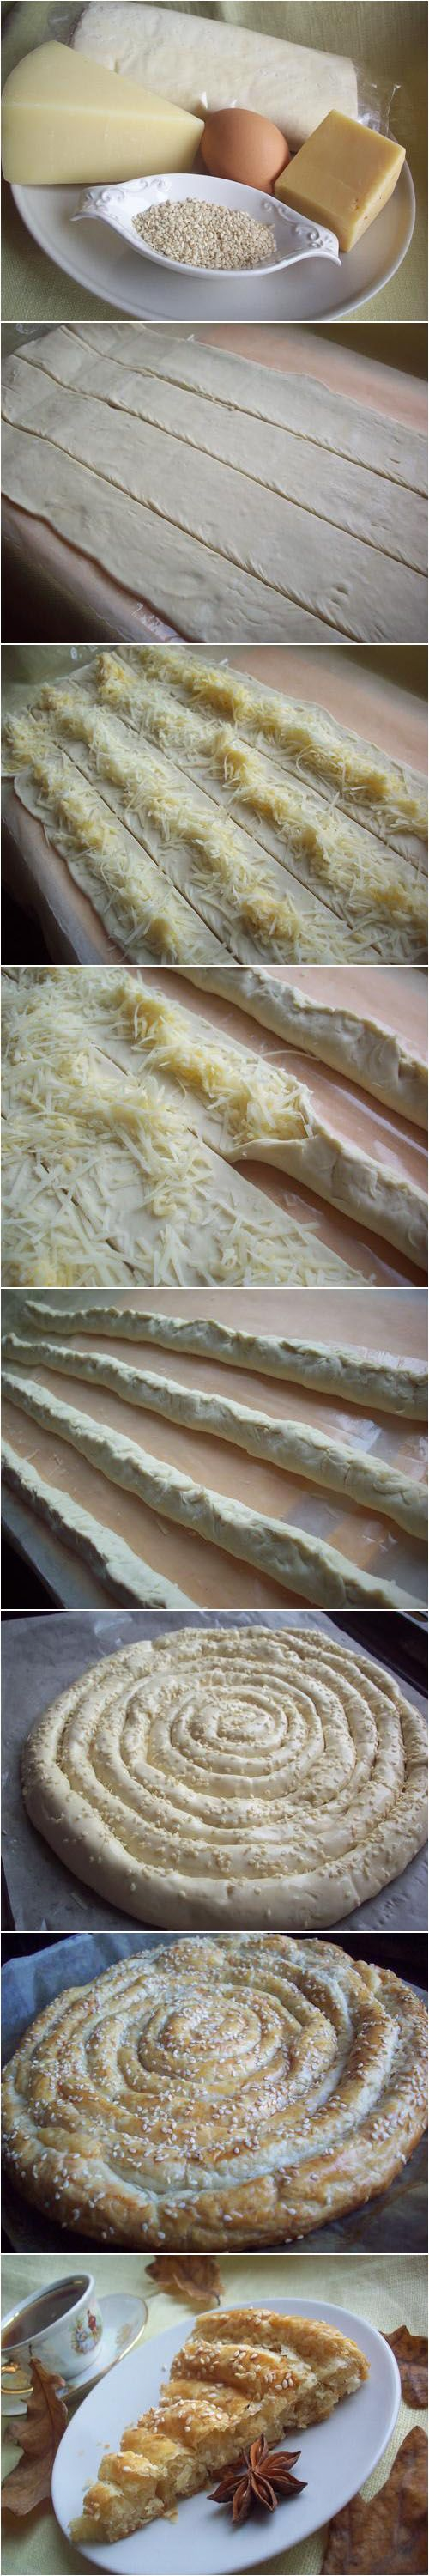 Puff Pastry, Cheeses, Sesame and Egg For Brushing The Top